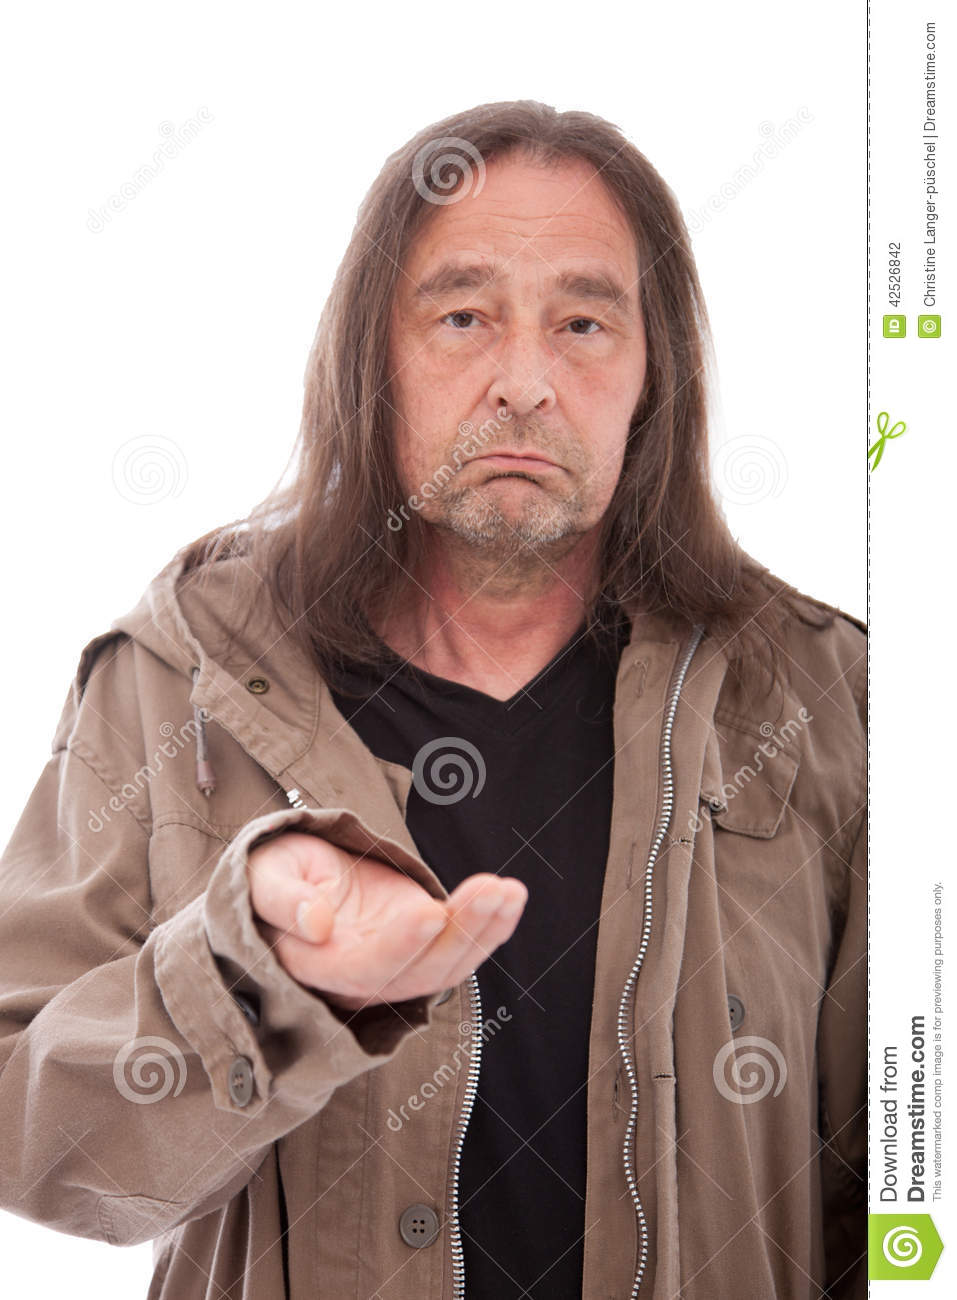 Man Begging For Money Food Or Help On White Stock Photo Image